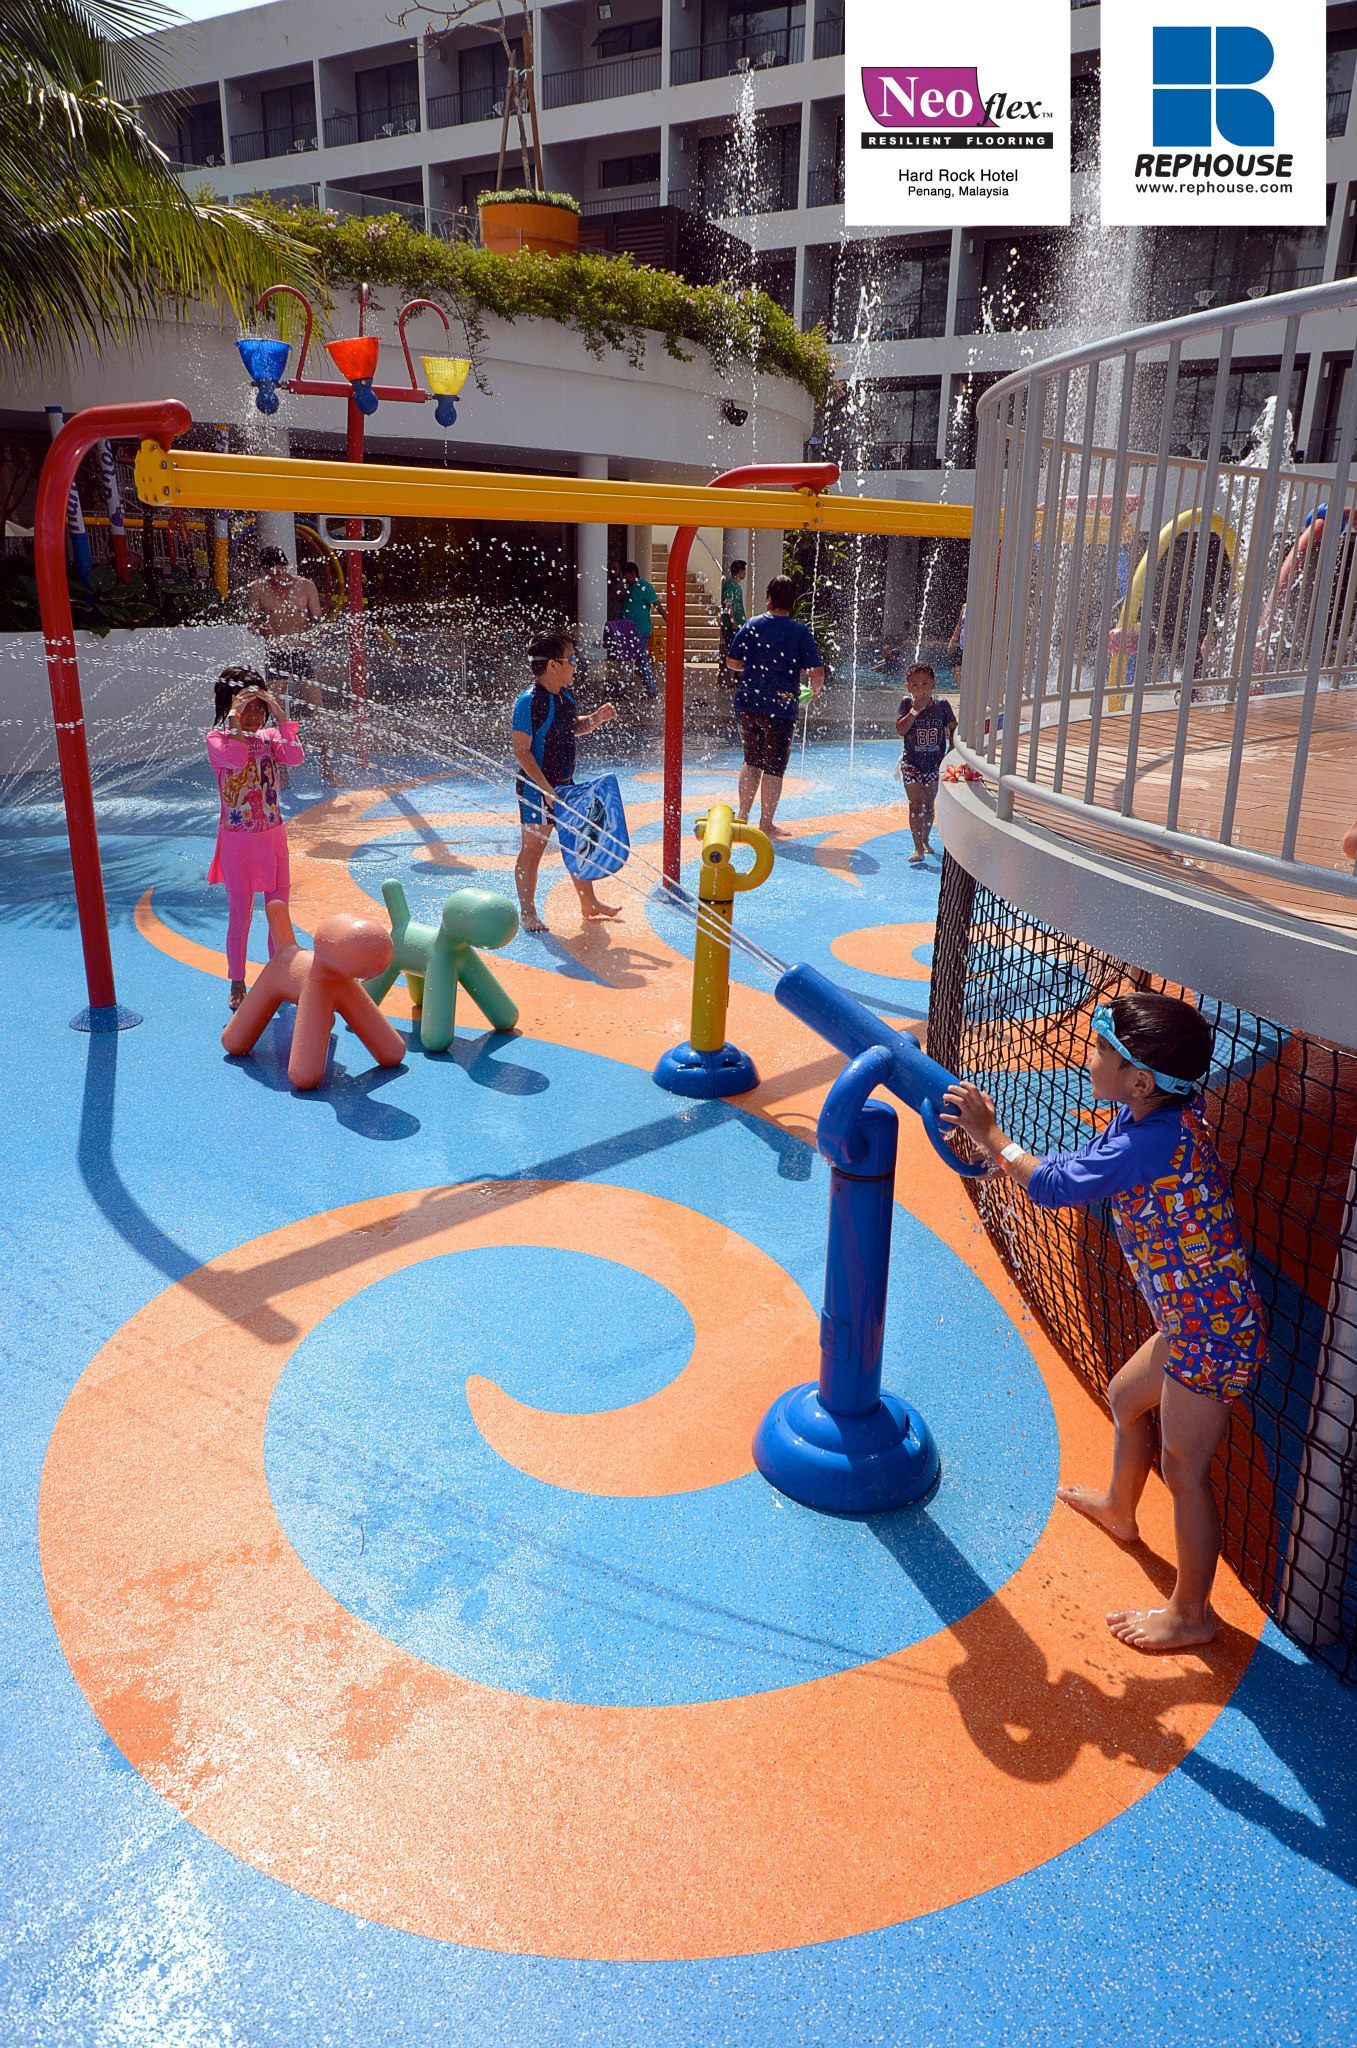 Neoflex 600 Series Pool Surround Rubber Flooring For Wet Play Area Hard Rock Hotel Penang Malaysia